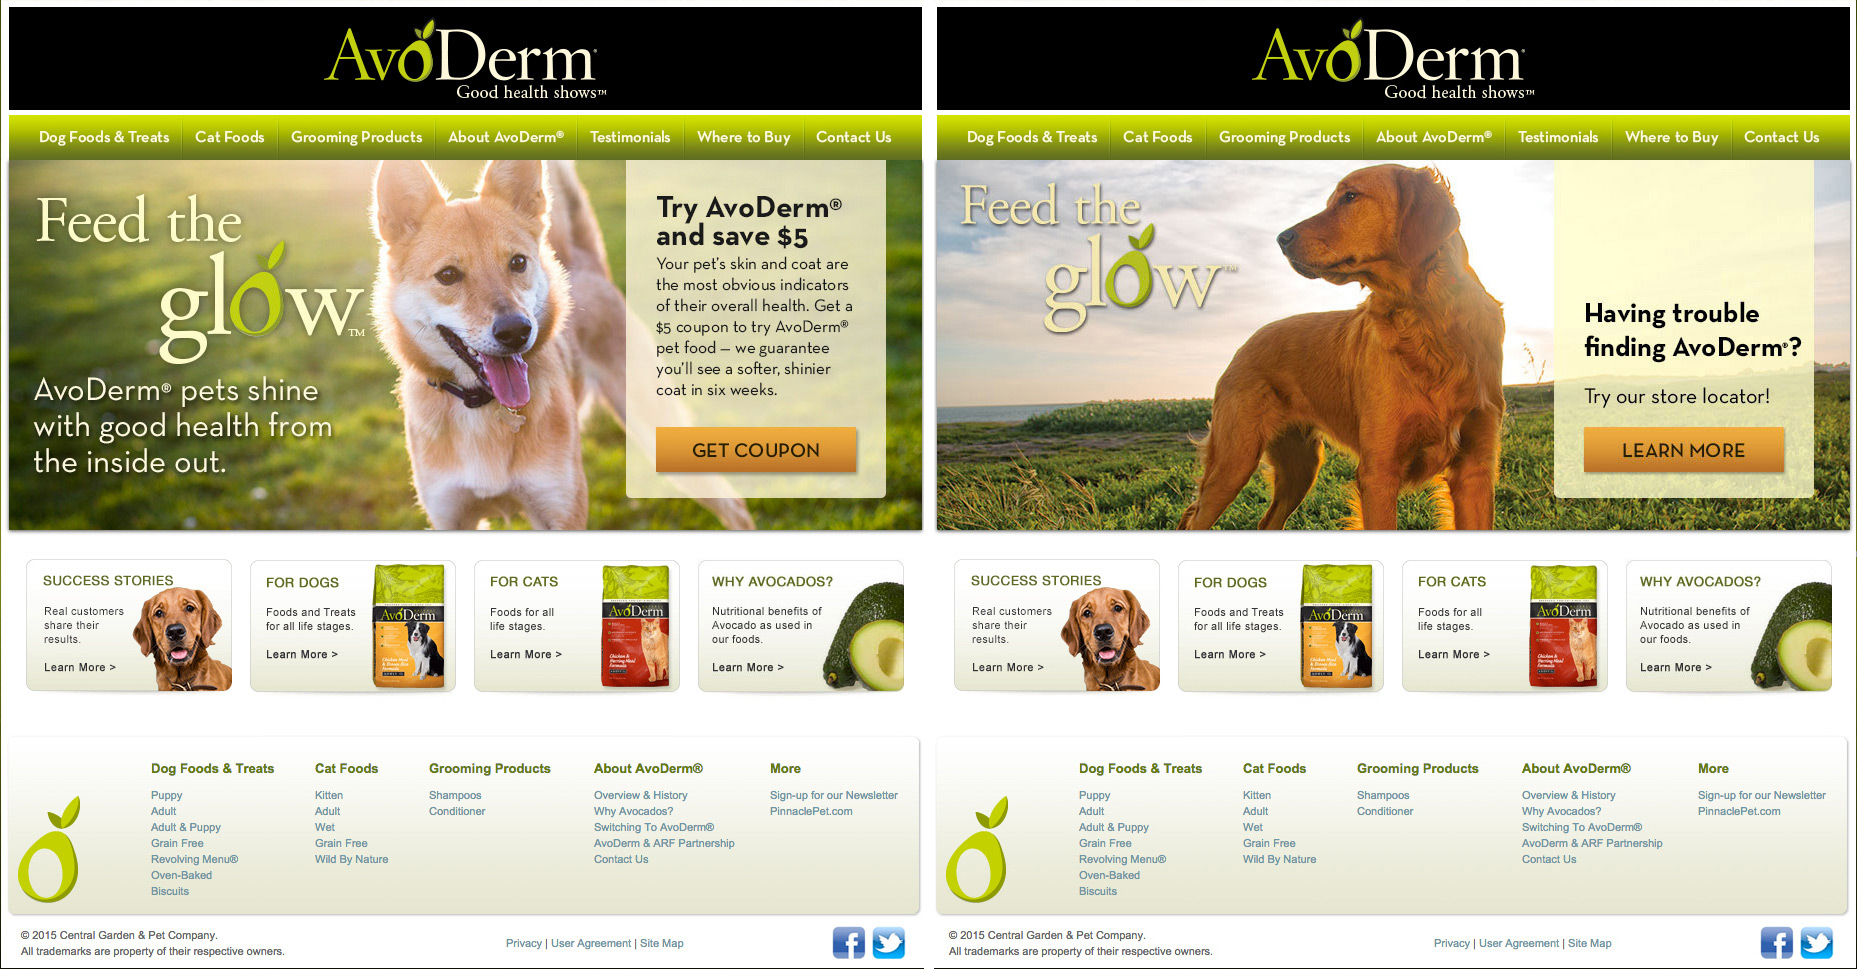 Commissioned Photography | Avoderm Website images by Mark Rogers